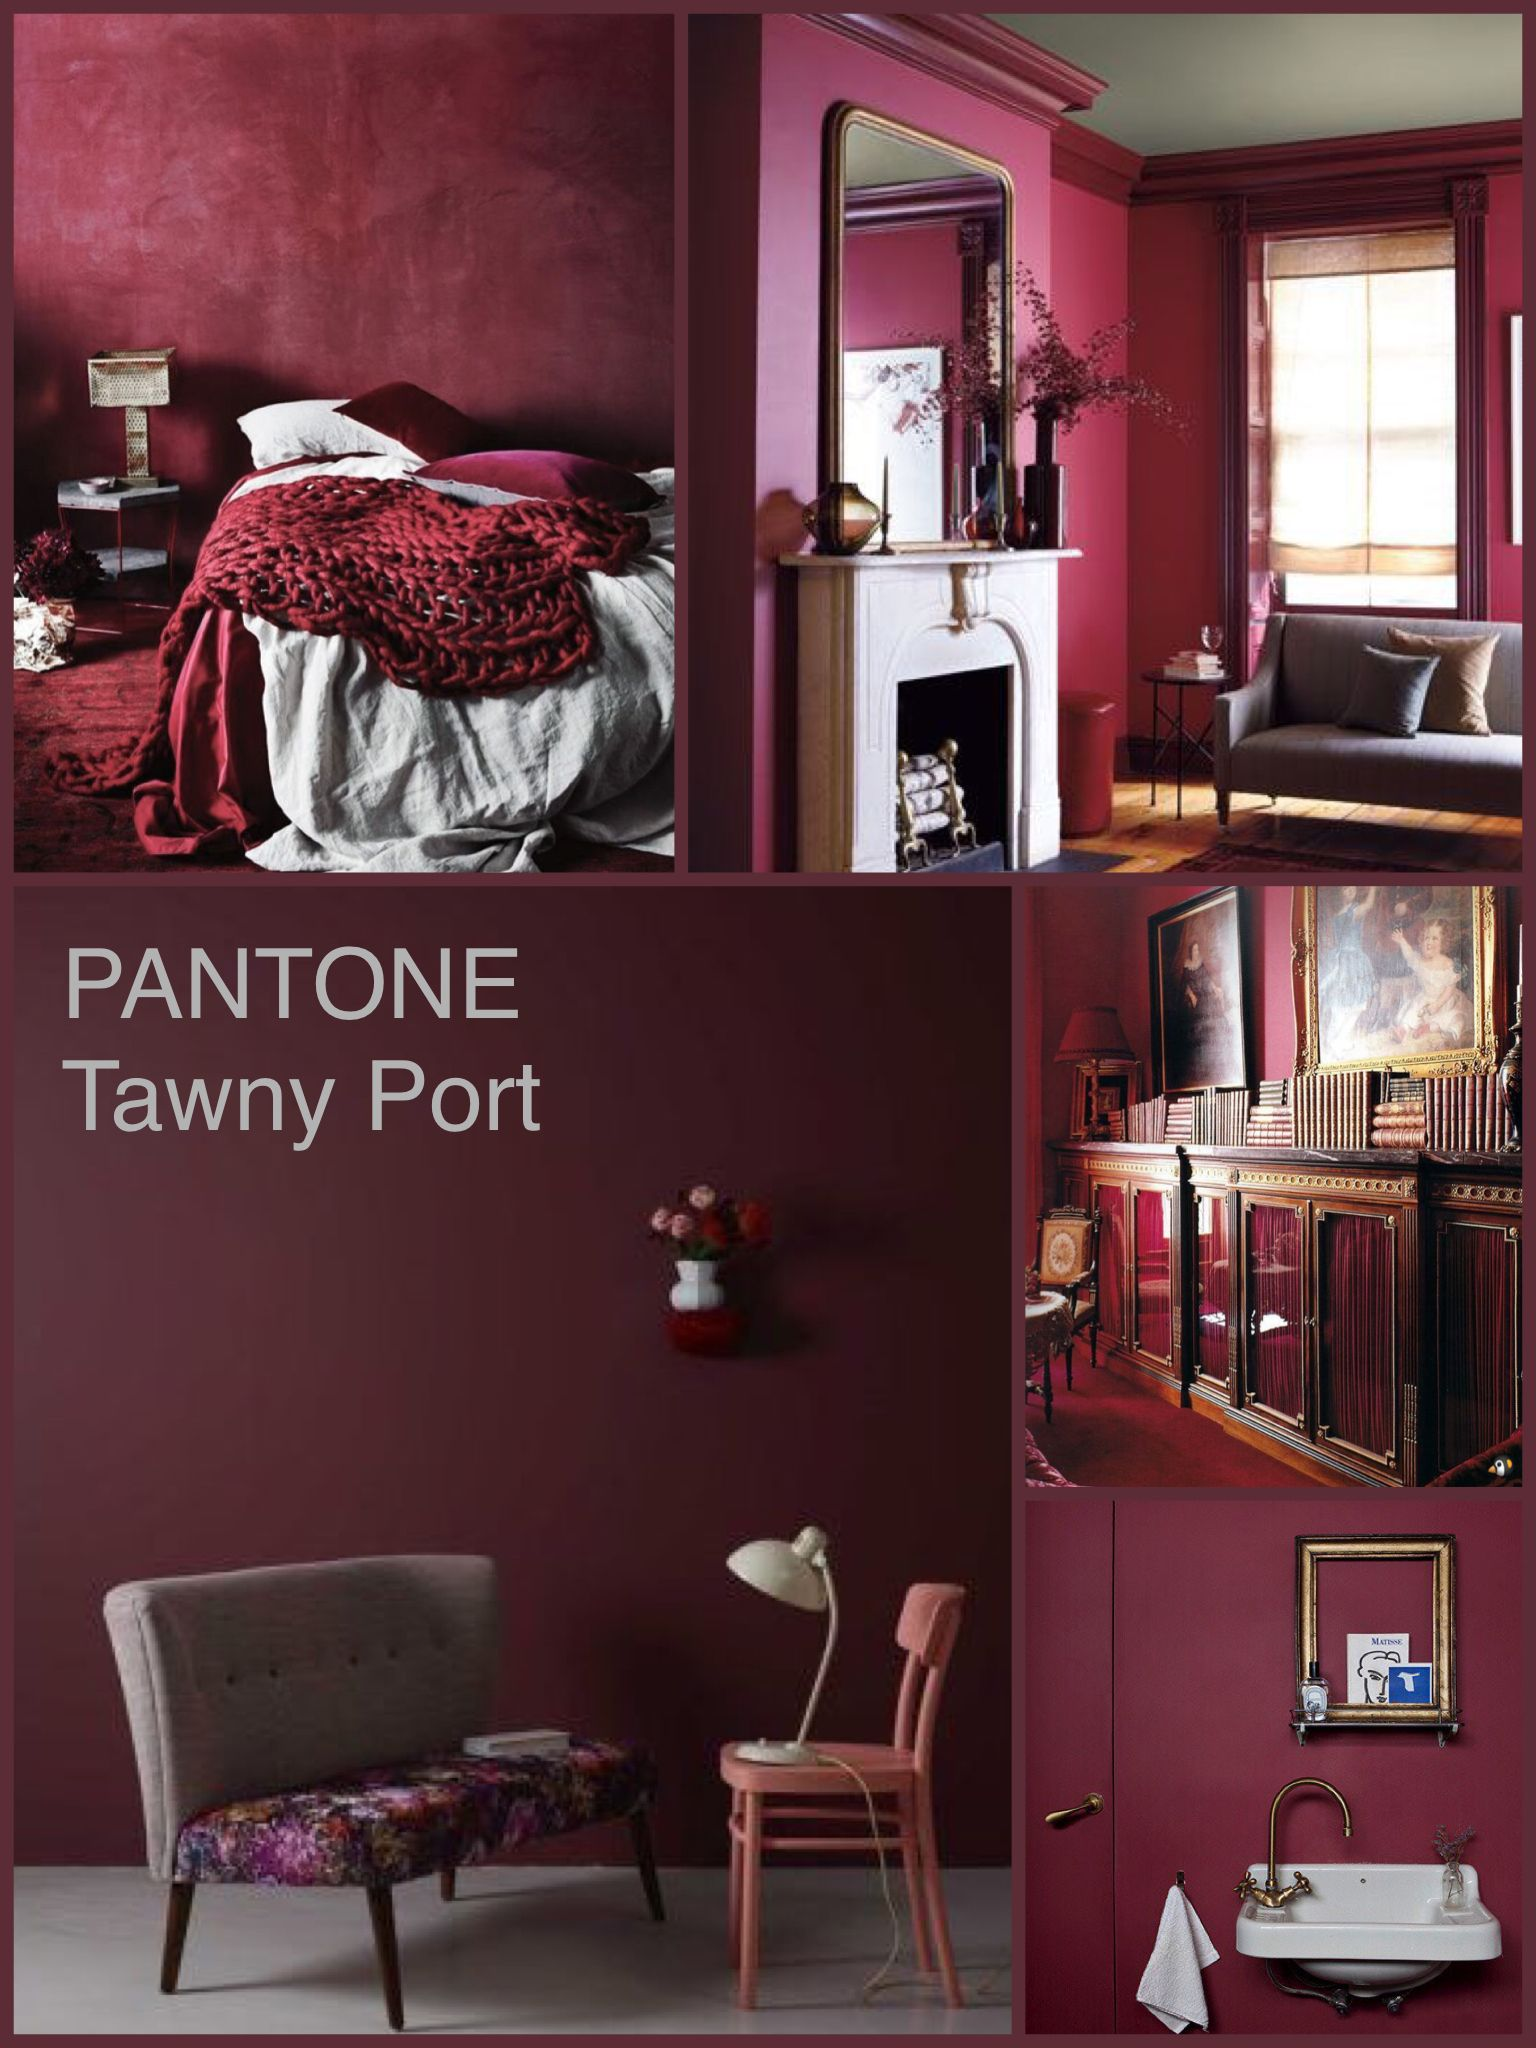 Pantone Tawny Port Home Decor Pantone Fall Pantone